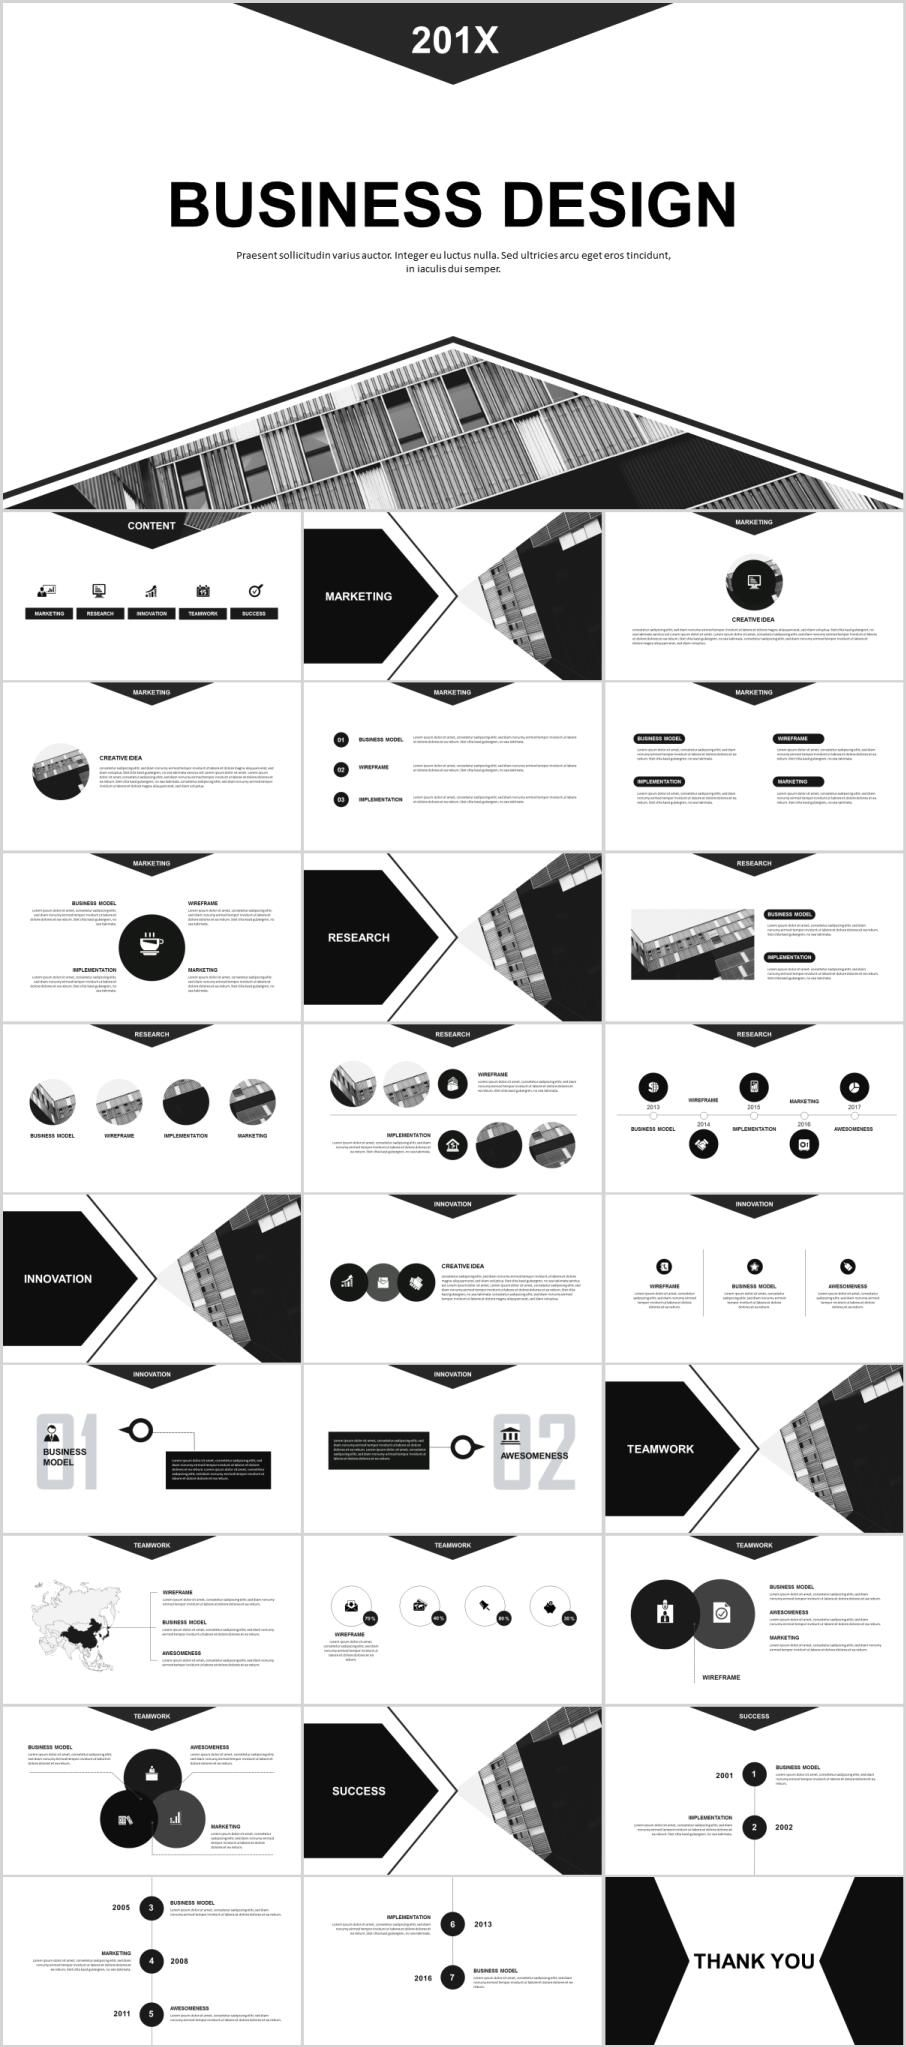 28 gray business design PowerPoint templatesThe highest quality PowerPoint Templates and Keynote Templates download